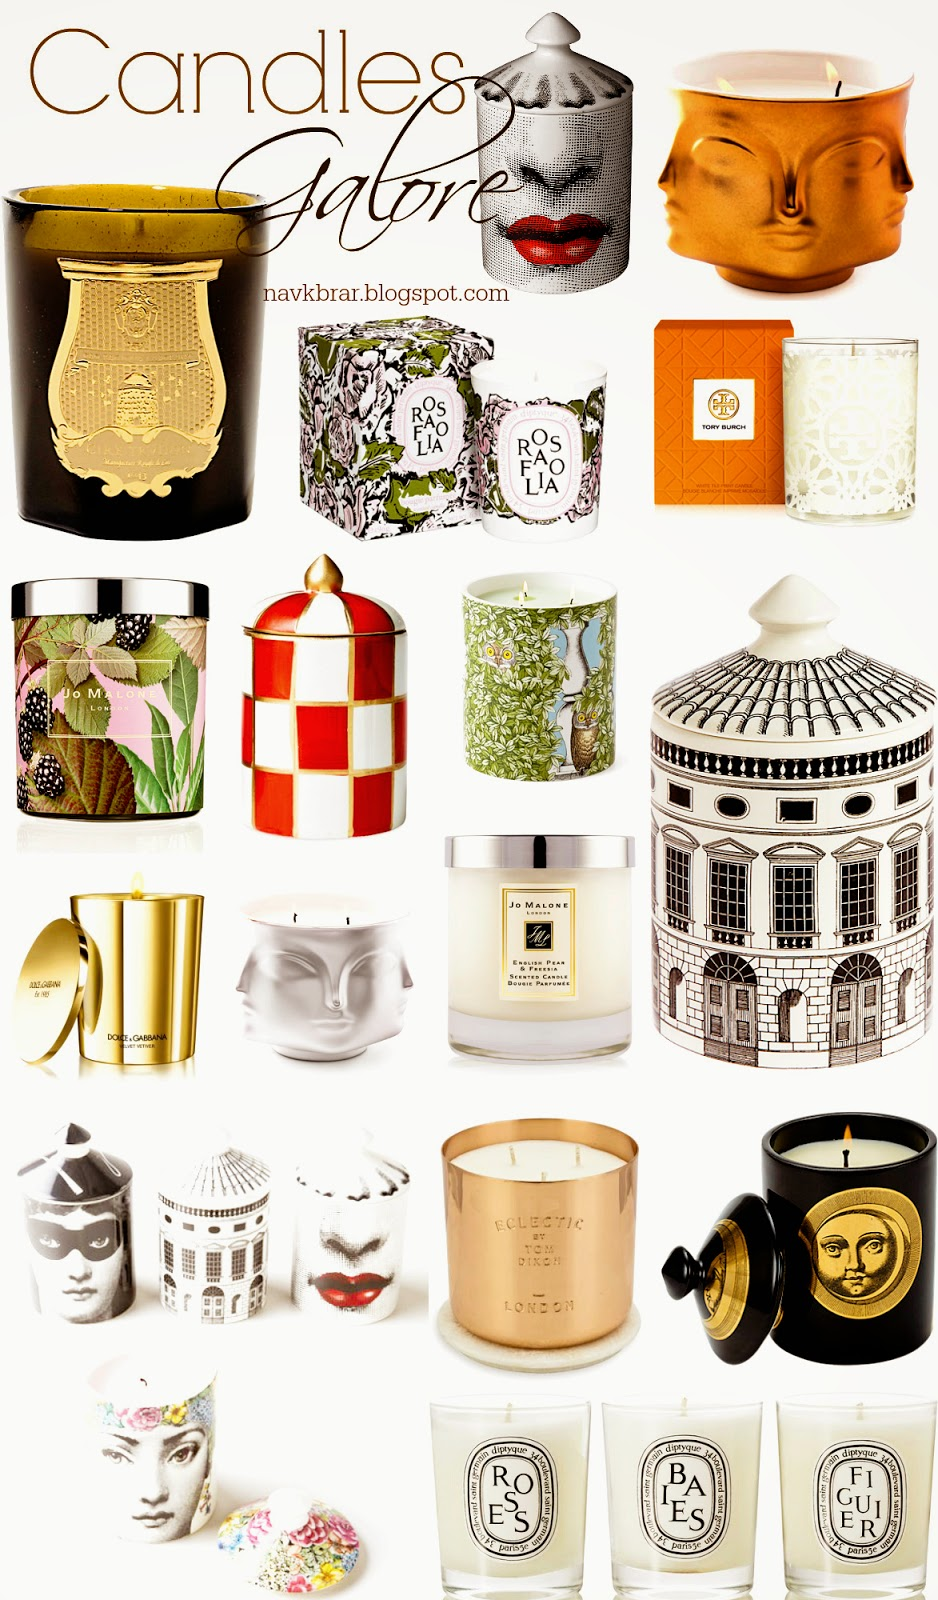 Decortative designer scented candles shopping guide: Jo Malone, Tory Burch, Diptyque, Jonathan Adler, Fornasetti